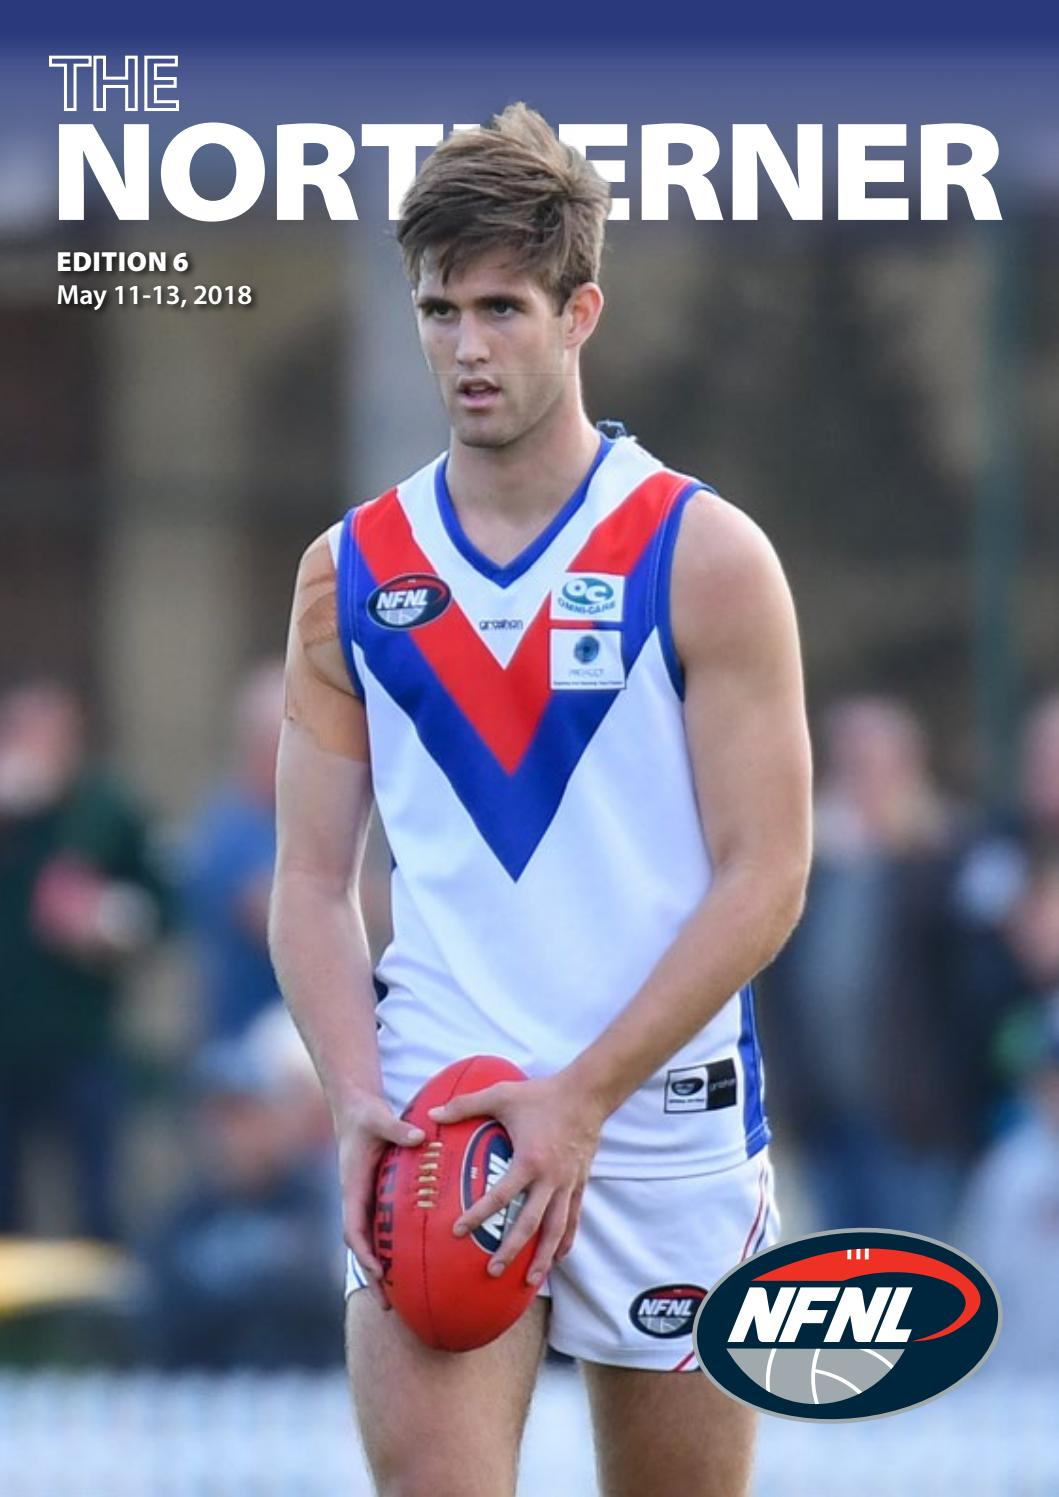 The Northerner - Edition 6, 2018 by Northern Football